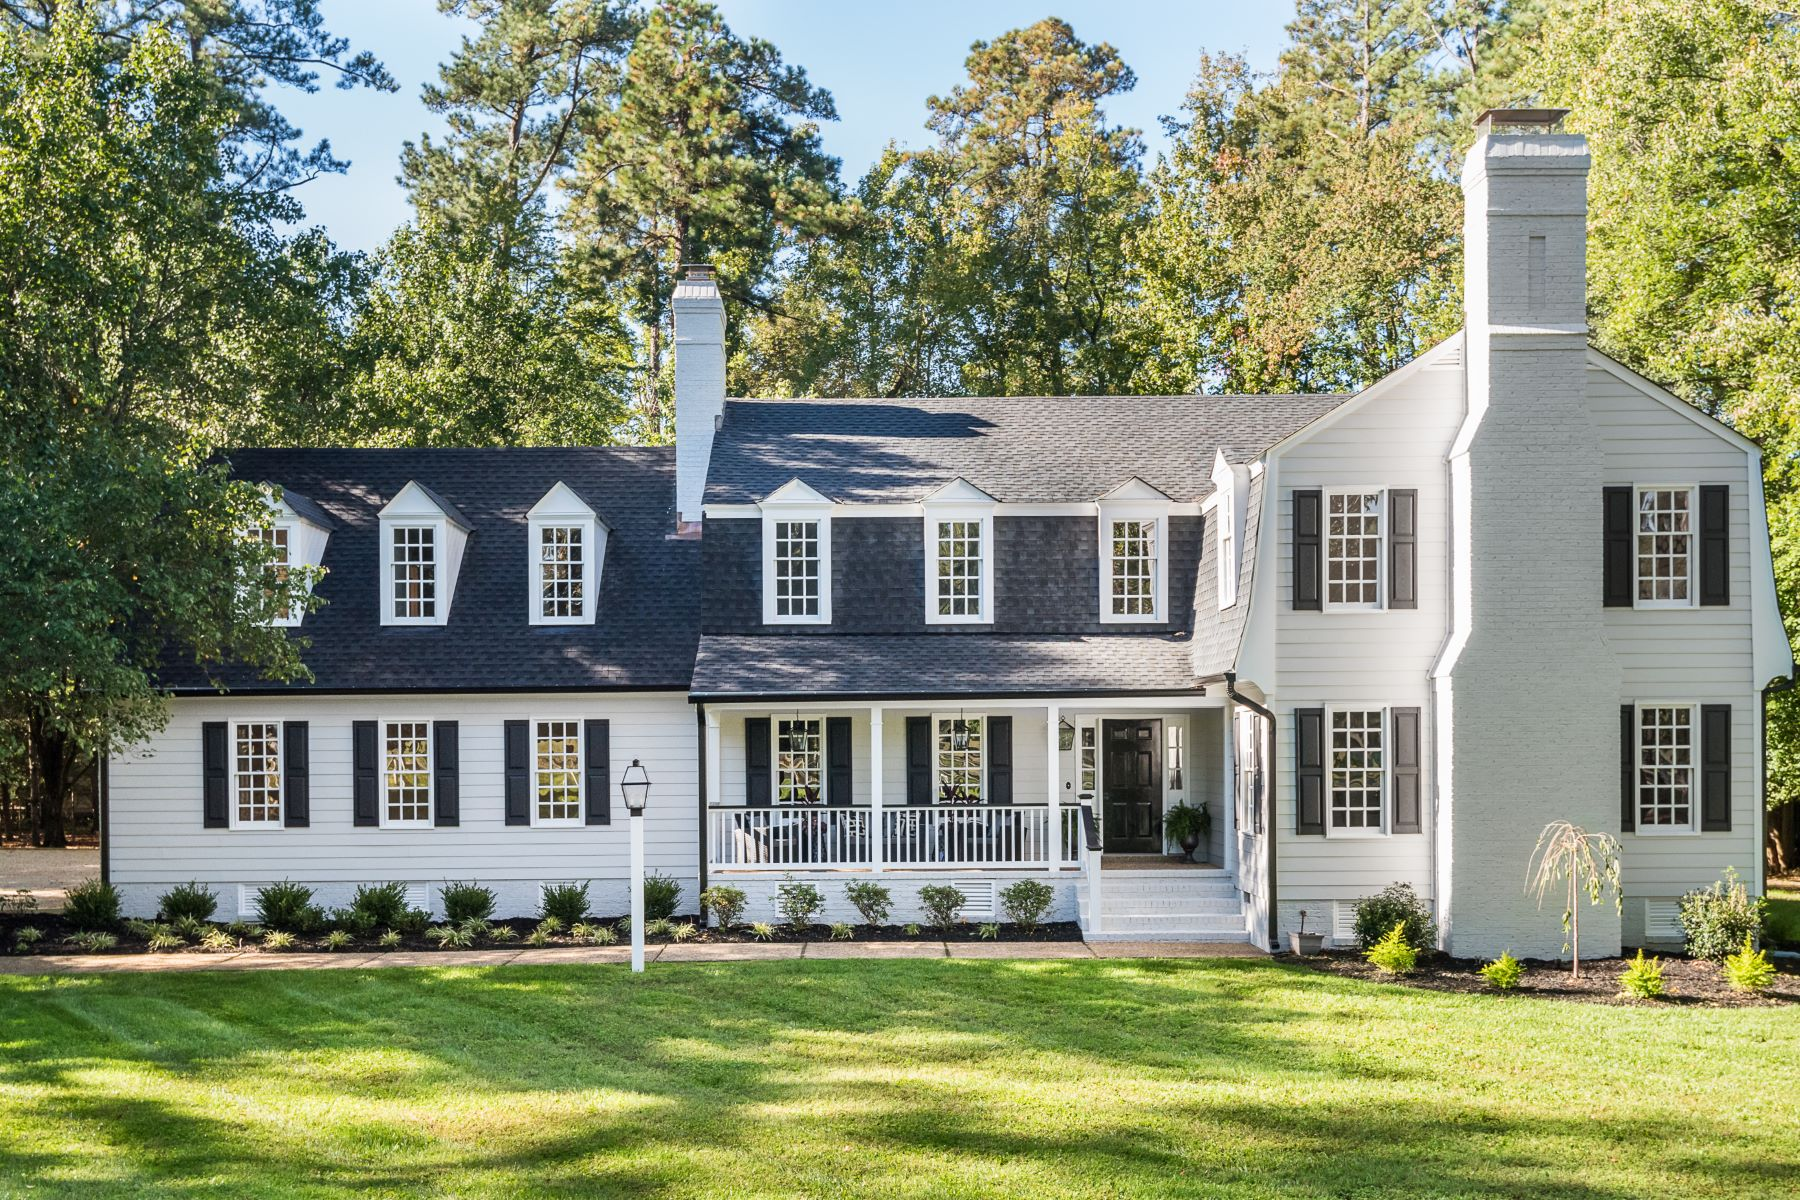 Single Family Homes for Sale at 9501 River Road, Henrico, Va, 23229 Henrico, Virginia 23229 United States